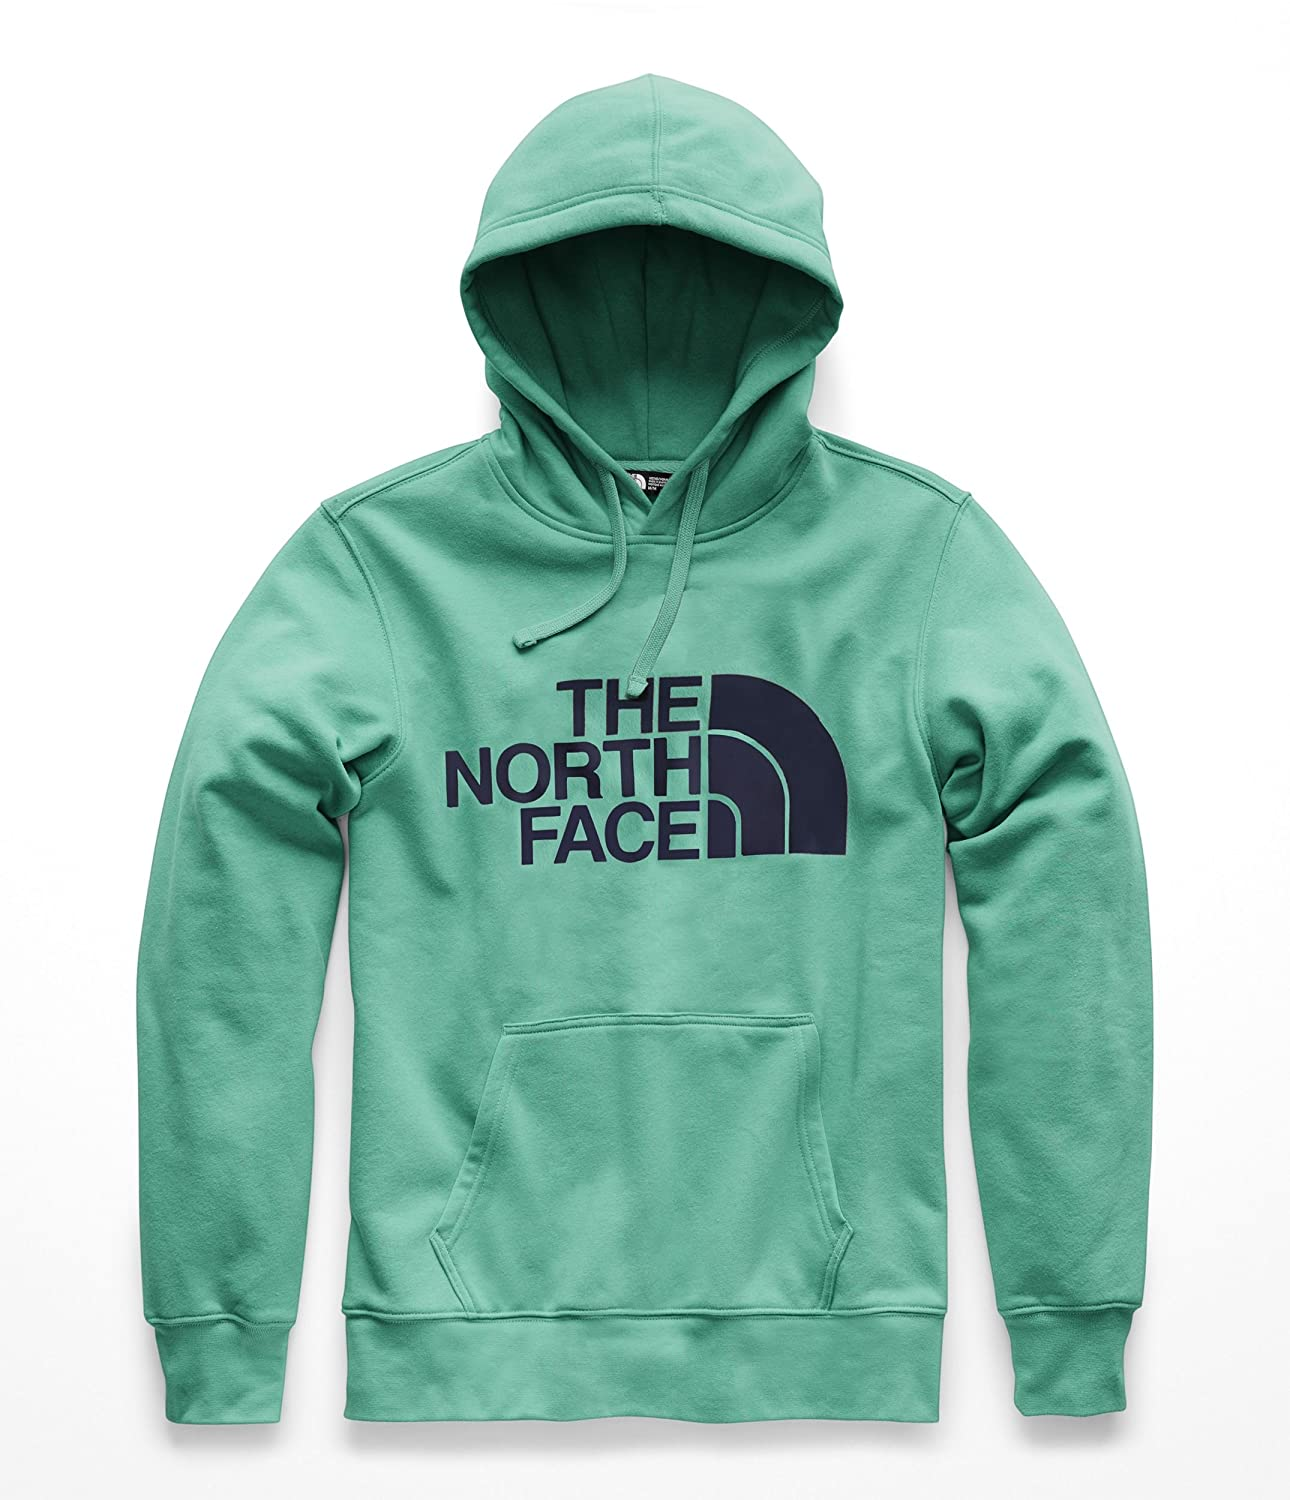 813103d9b The North Face Mens Jumbo Half Dome Hoodie